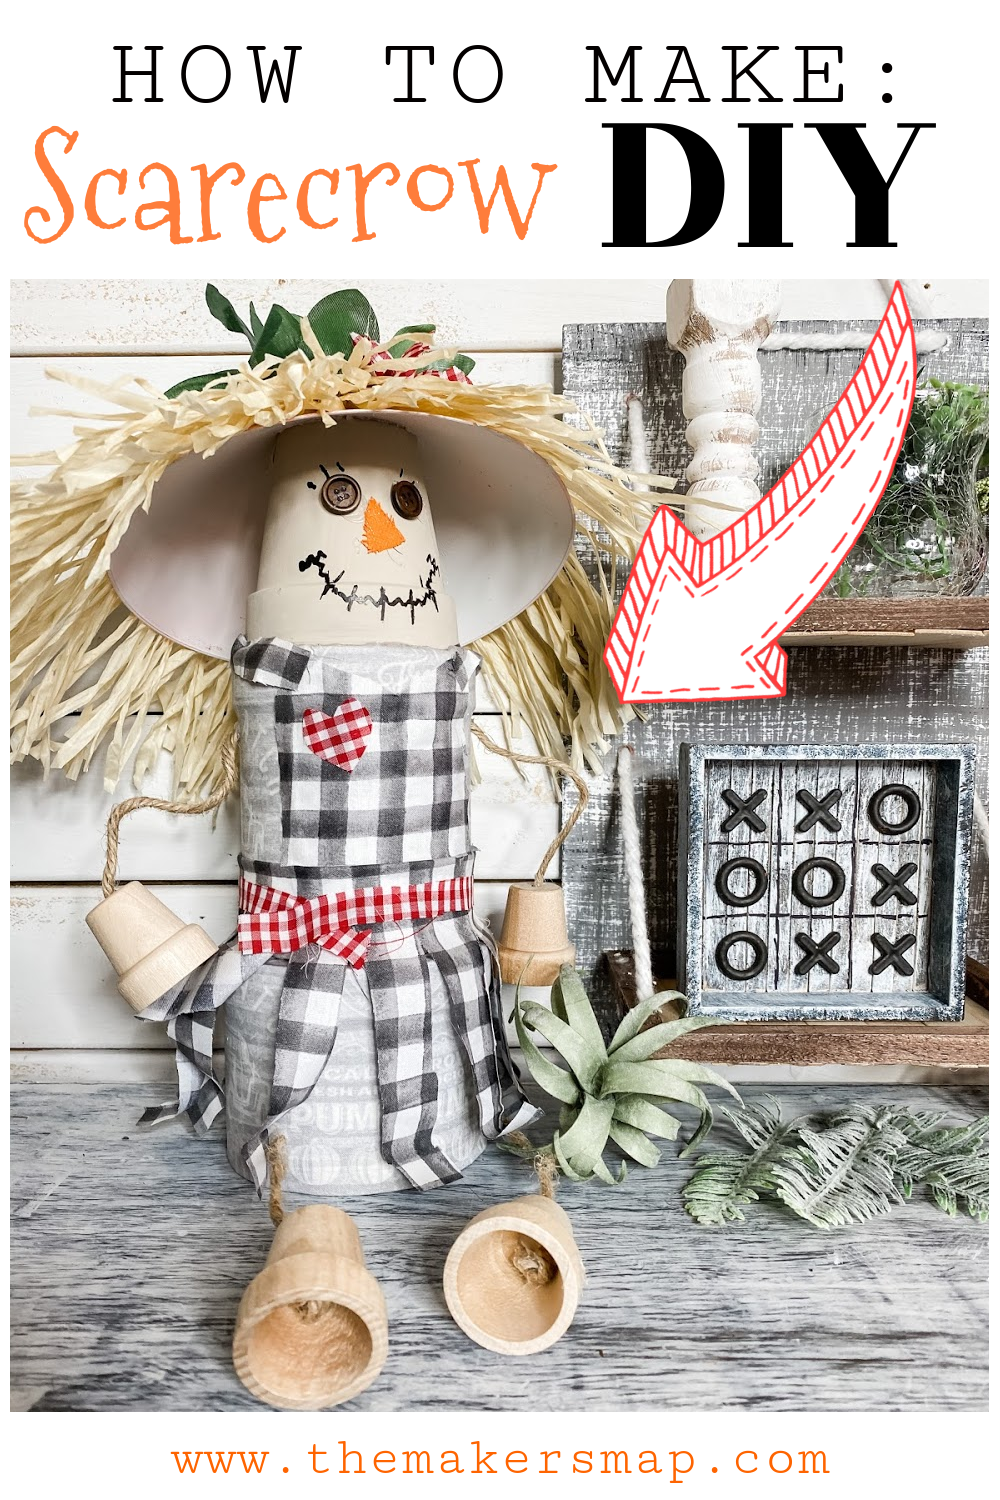 how to make scarecrow diy